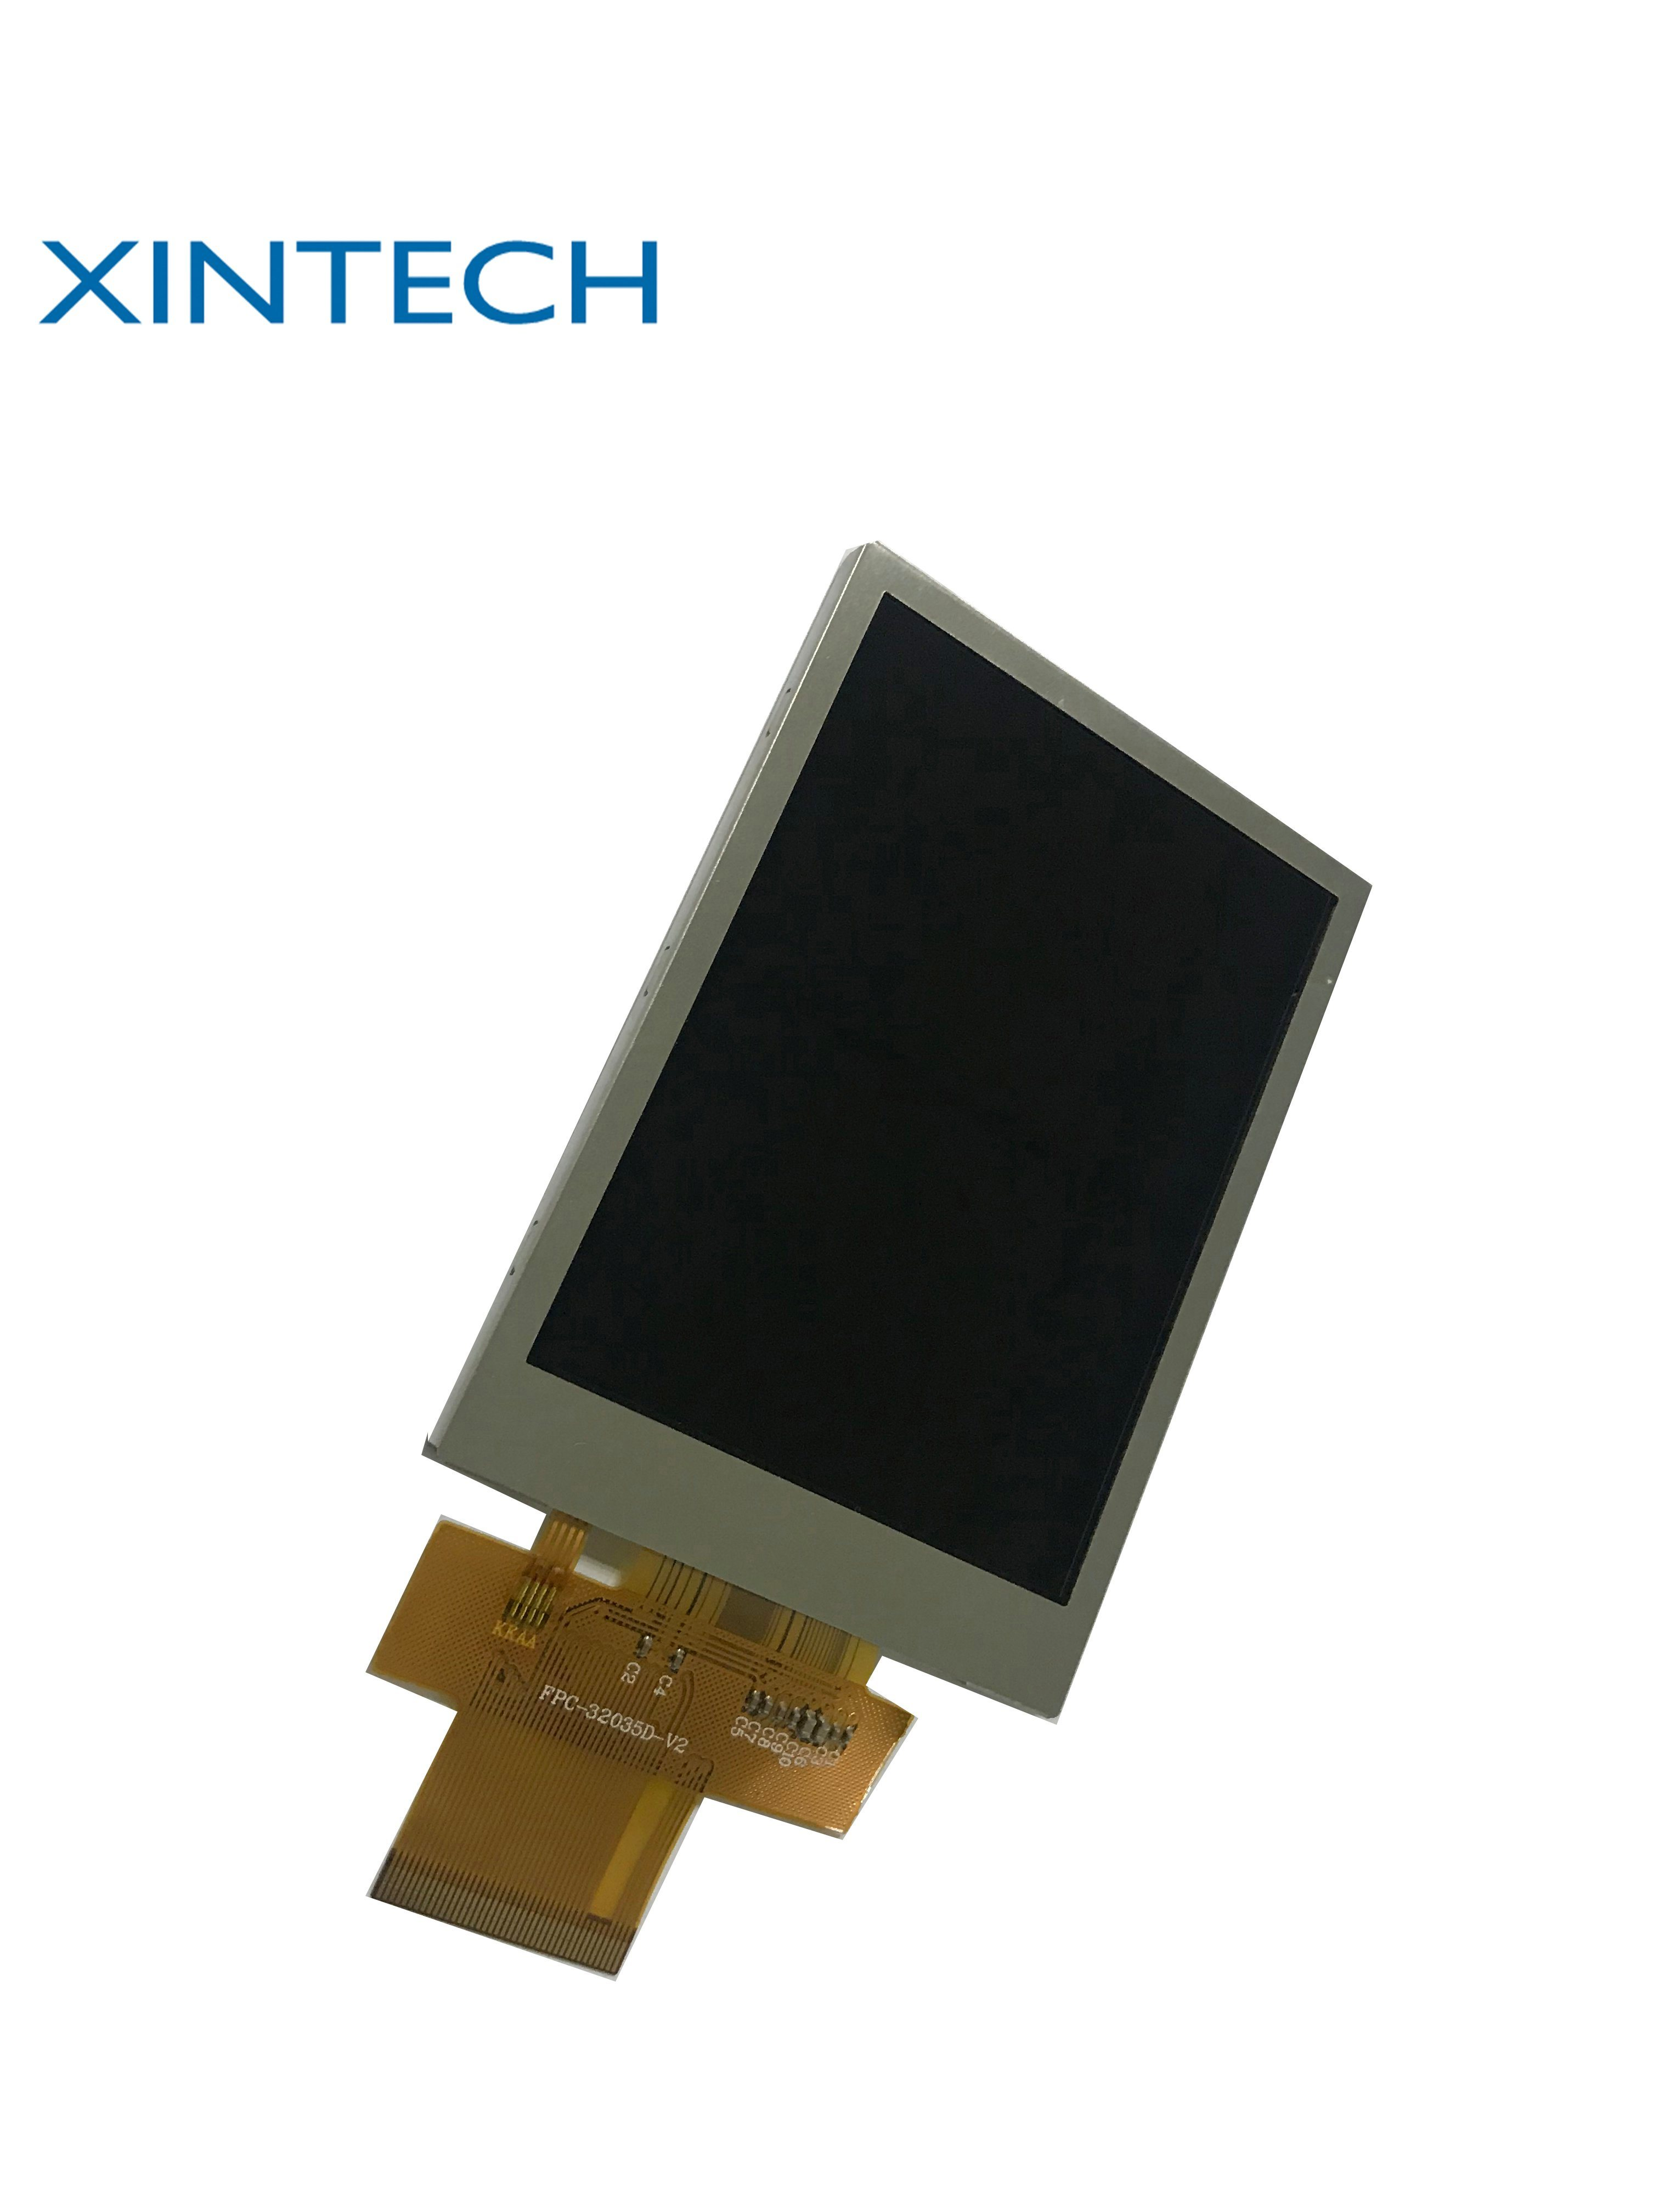 [Hot Item] 4 Inch LCD TFT Touchscreen Display with Mipi Dsi Interface for  Iot